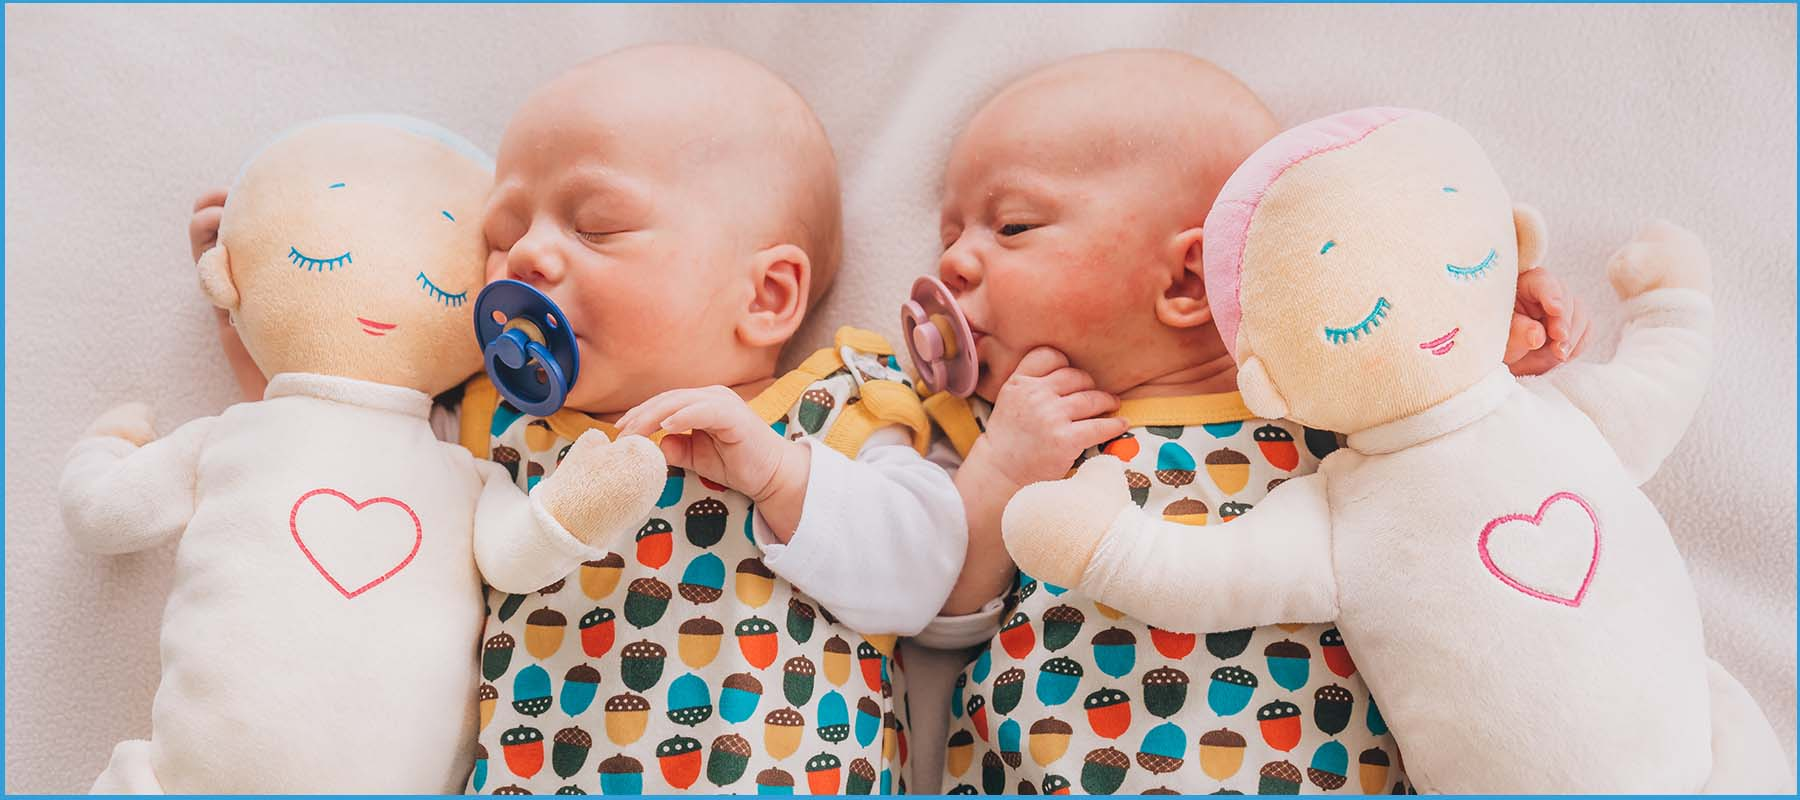 two twin babies holding Lulla Dolls